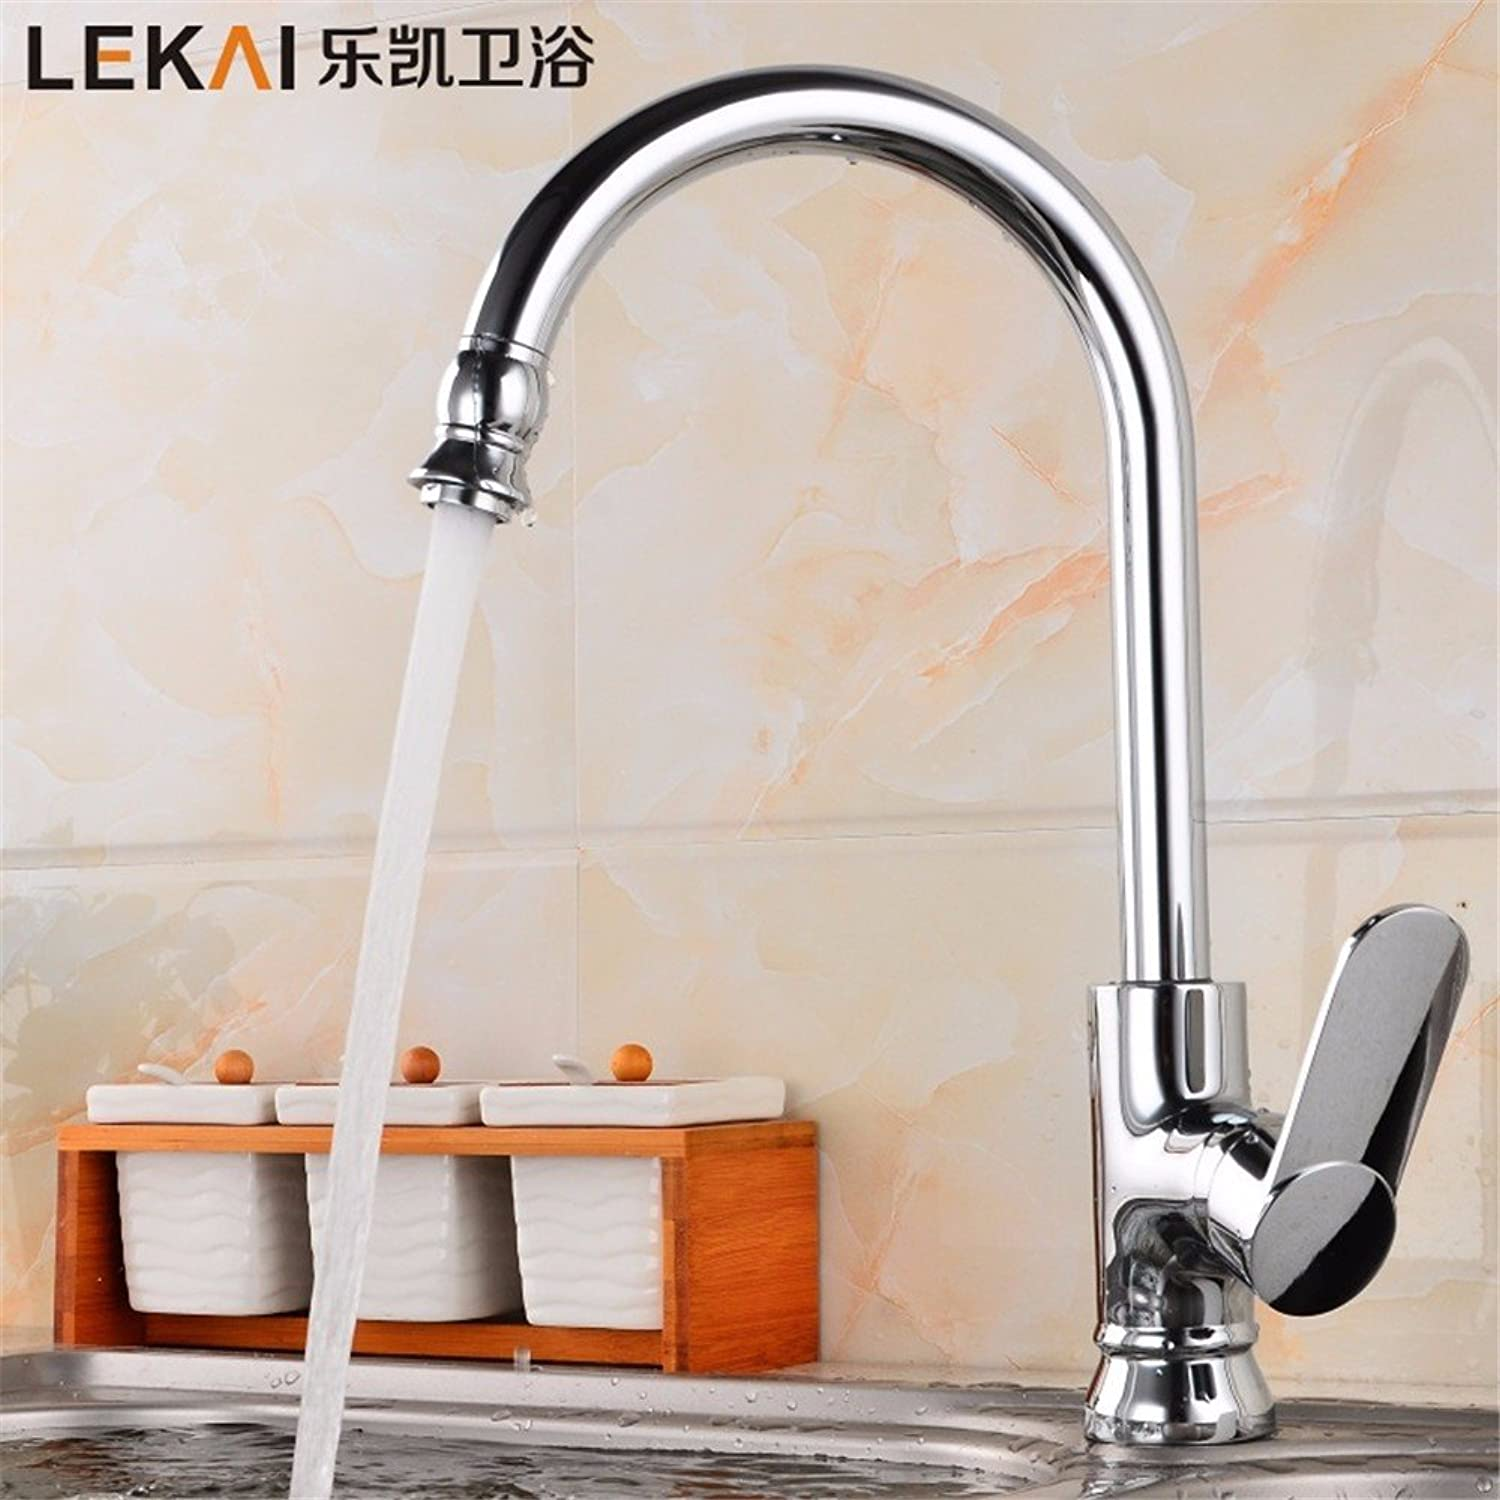 Bijjaladeva Bathroom Sink Vessel Faucet Basin Mixer Tap Chrome-plated stainless steel full copper kitchen faucet classic hot and cold water tank, stainless steel cooking pots of ro